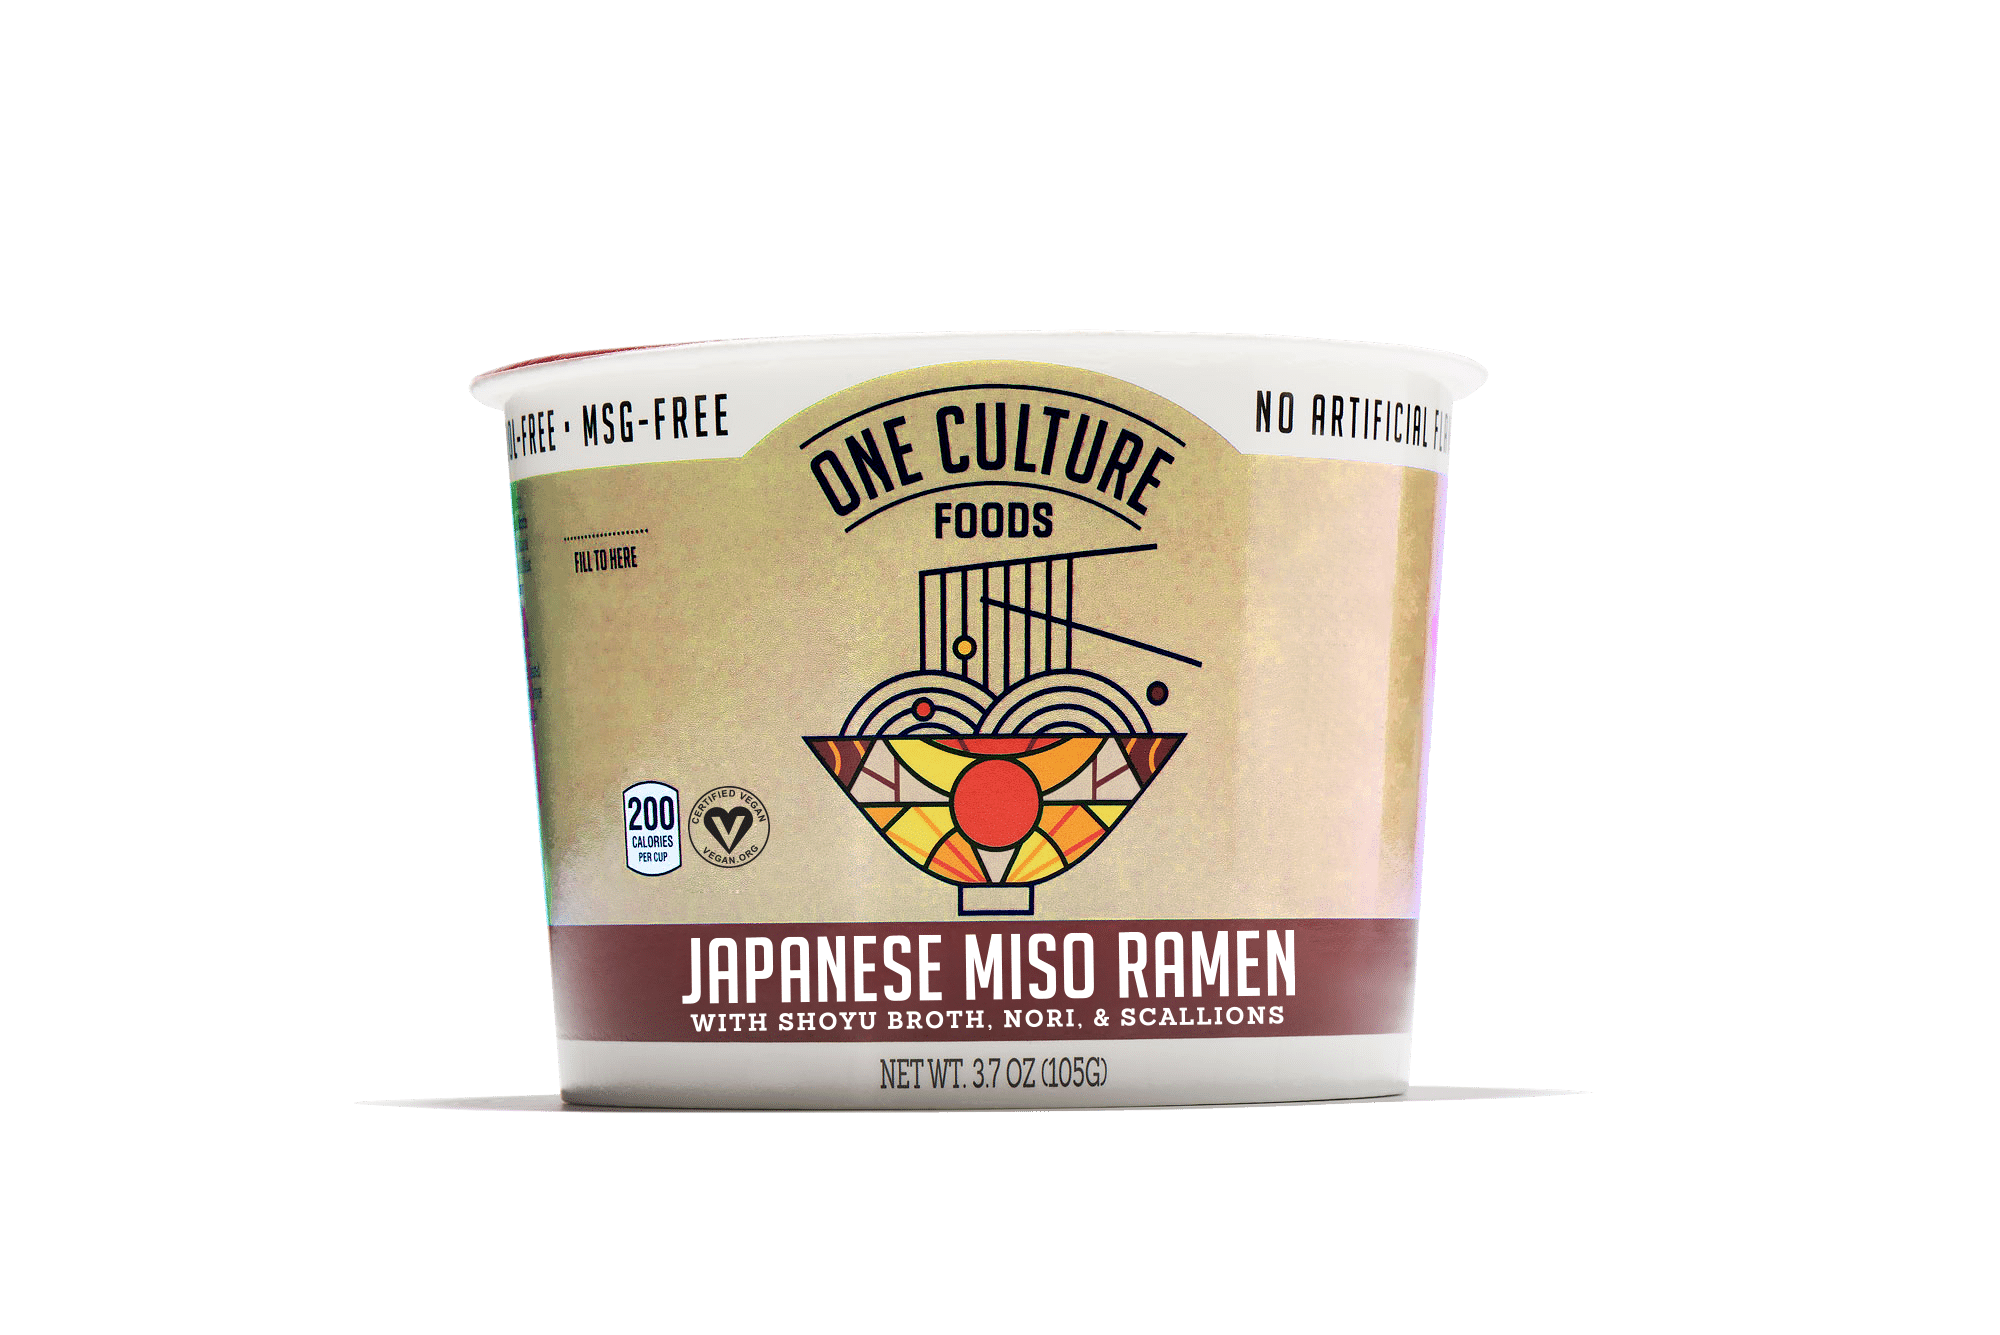 One Culture Foods Launching Two New Instant Noodle Cup Flavors at Expo West